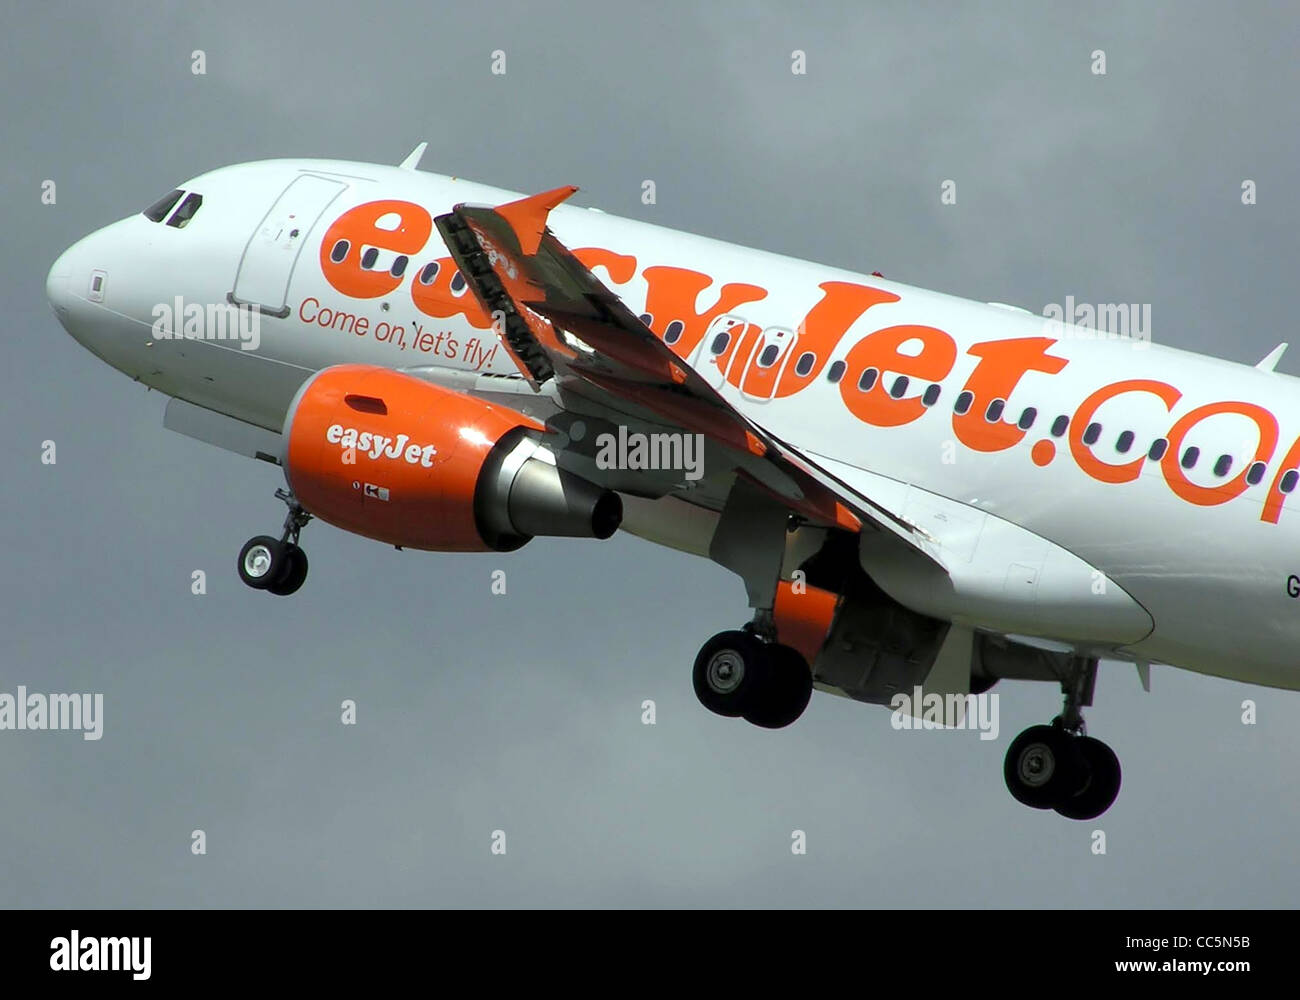 An easyJet Airbus A319 (registration unknown) takes off from Bristol International Airport, Bristol, England. - Stock Image